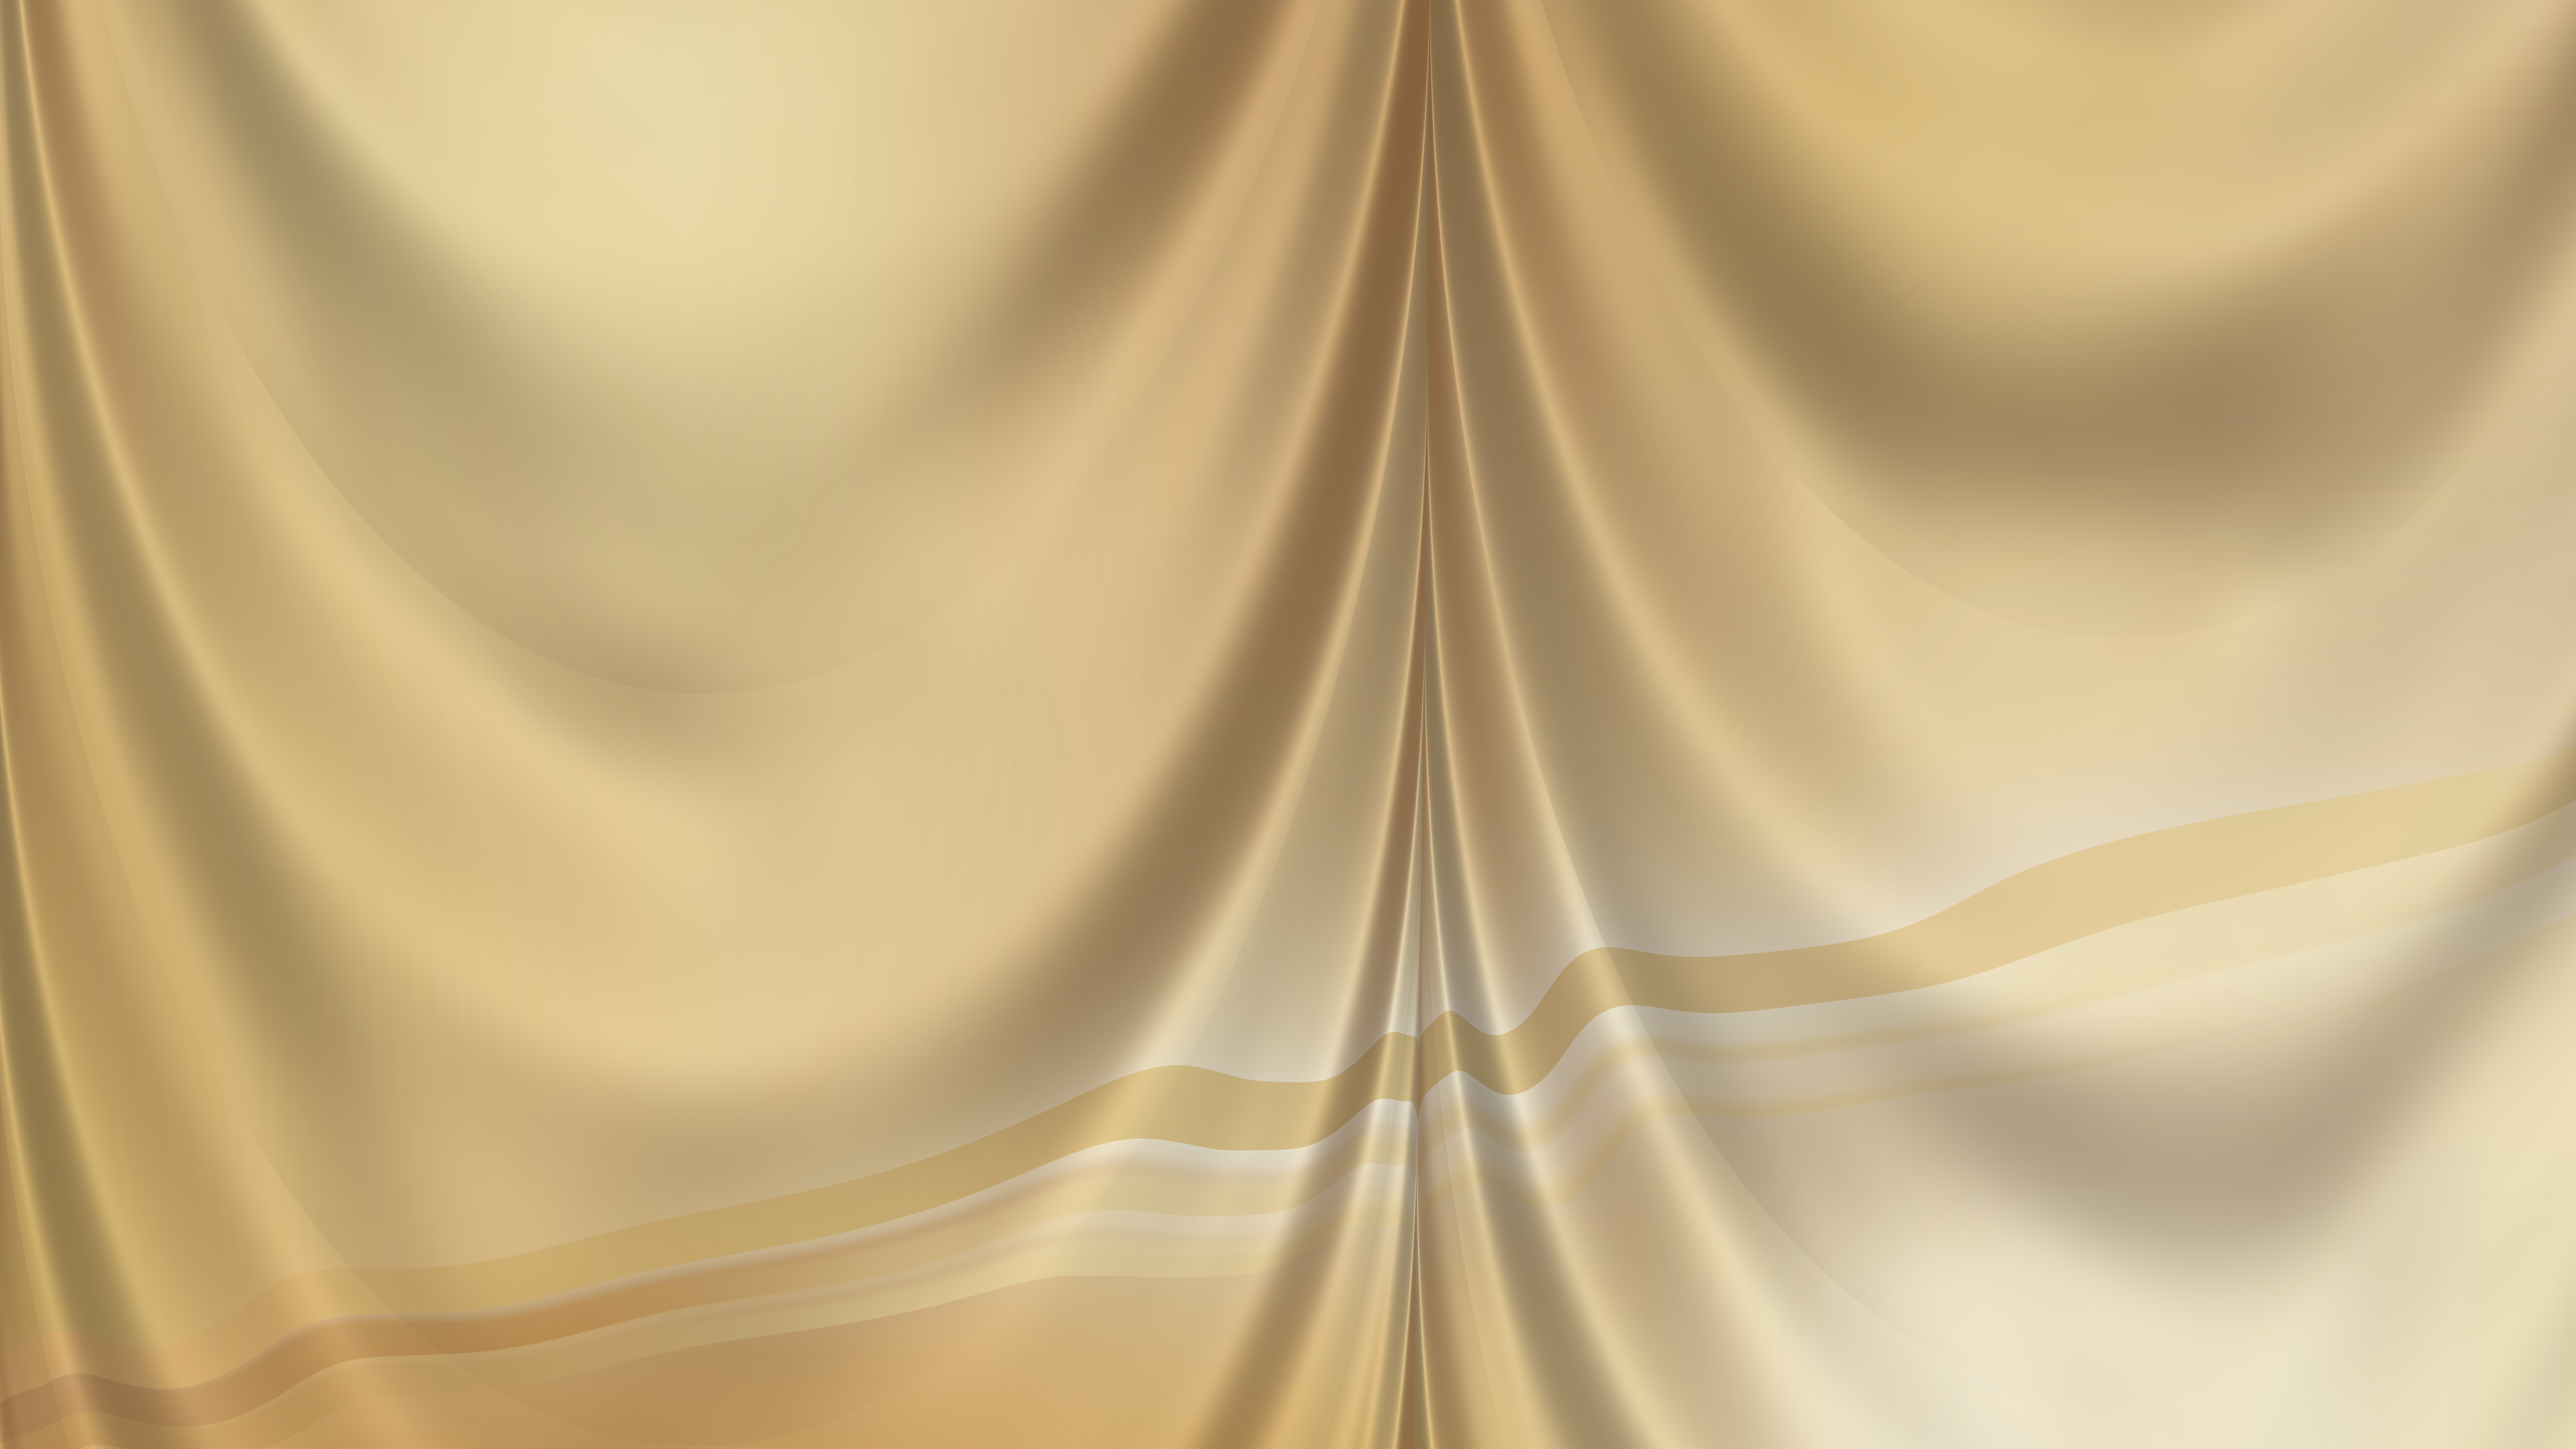 Abstract Gold Curtain Texture Background